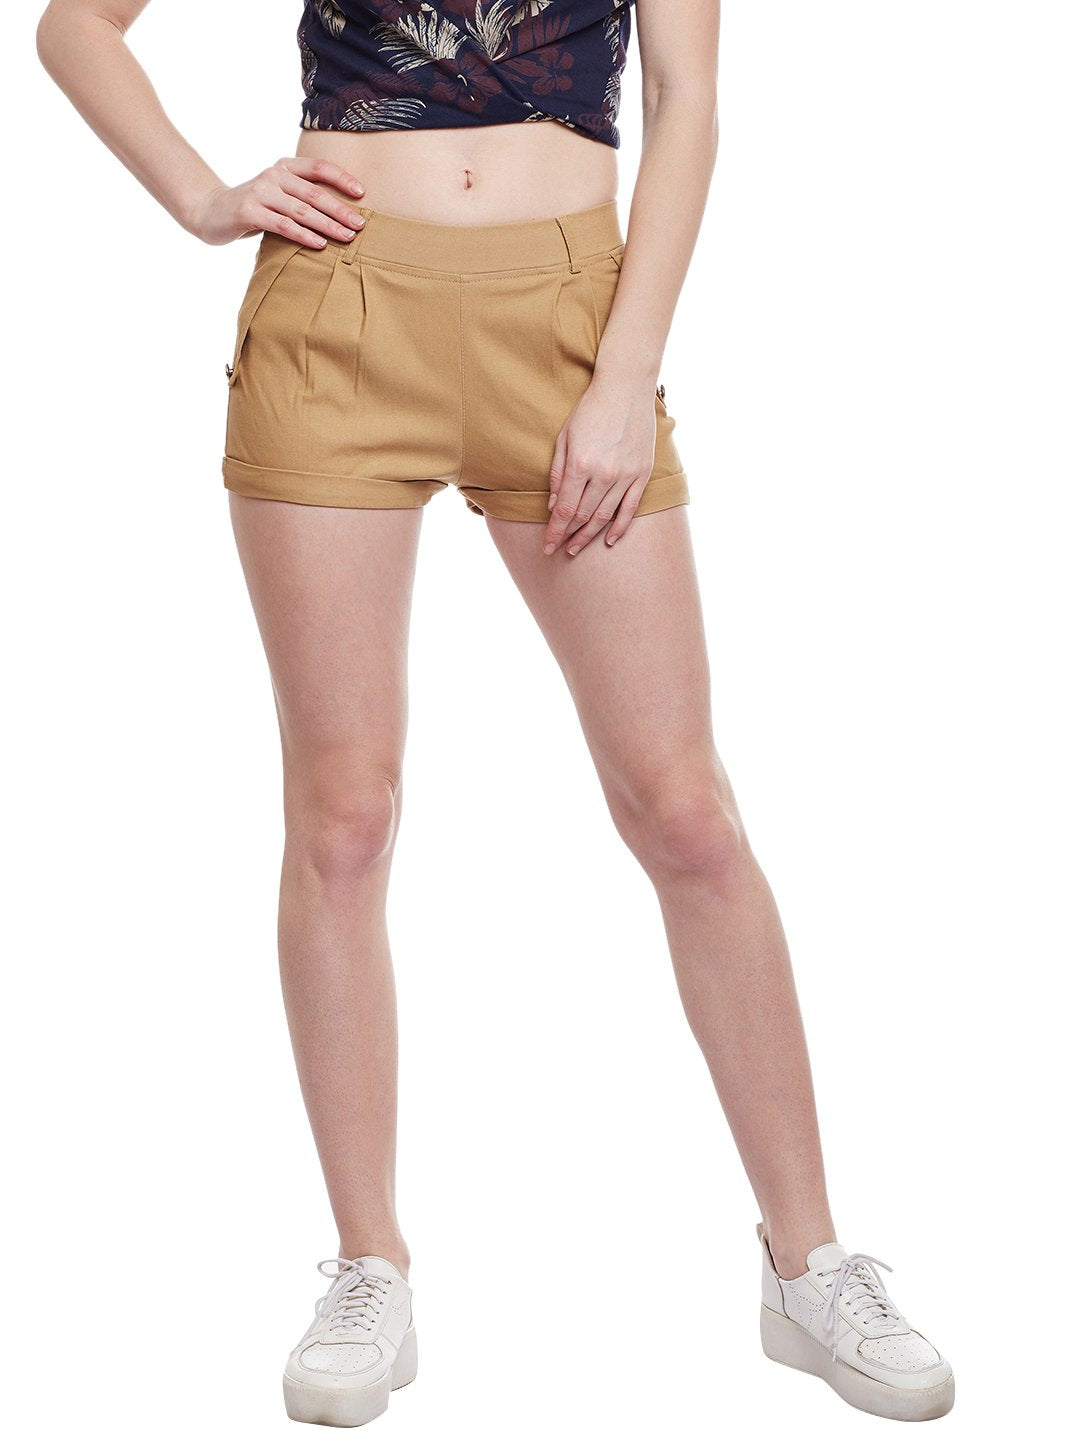 Castle Fawn Flap with Button Cotton Spandex Shorts